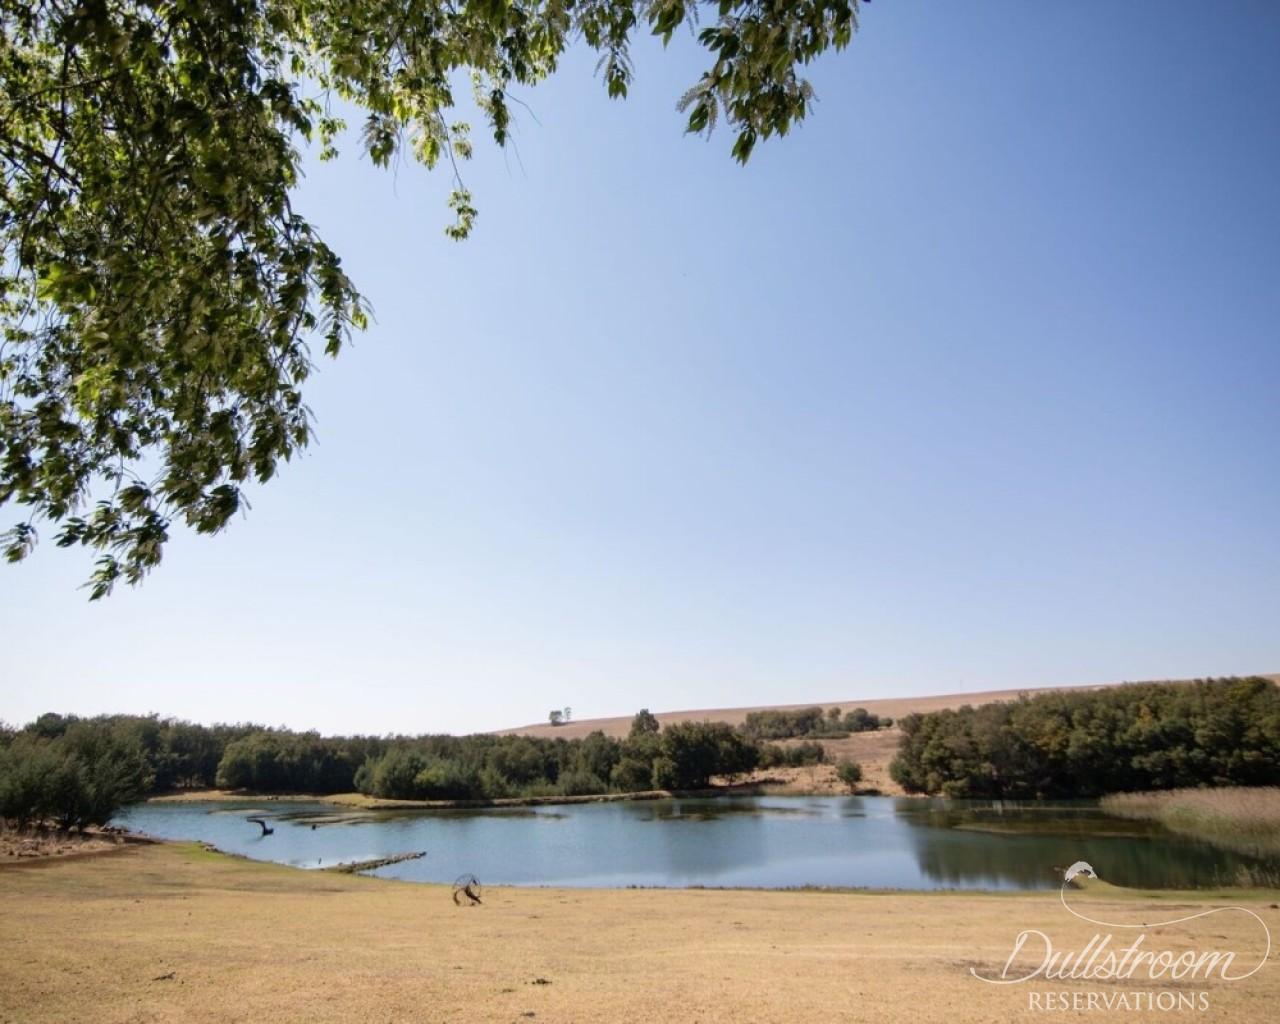 Lake Heron Maly Fisher Accommodation In Dullstroom